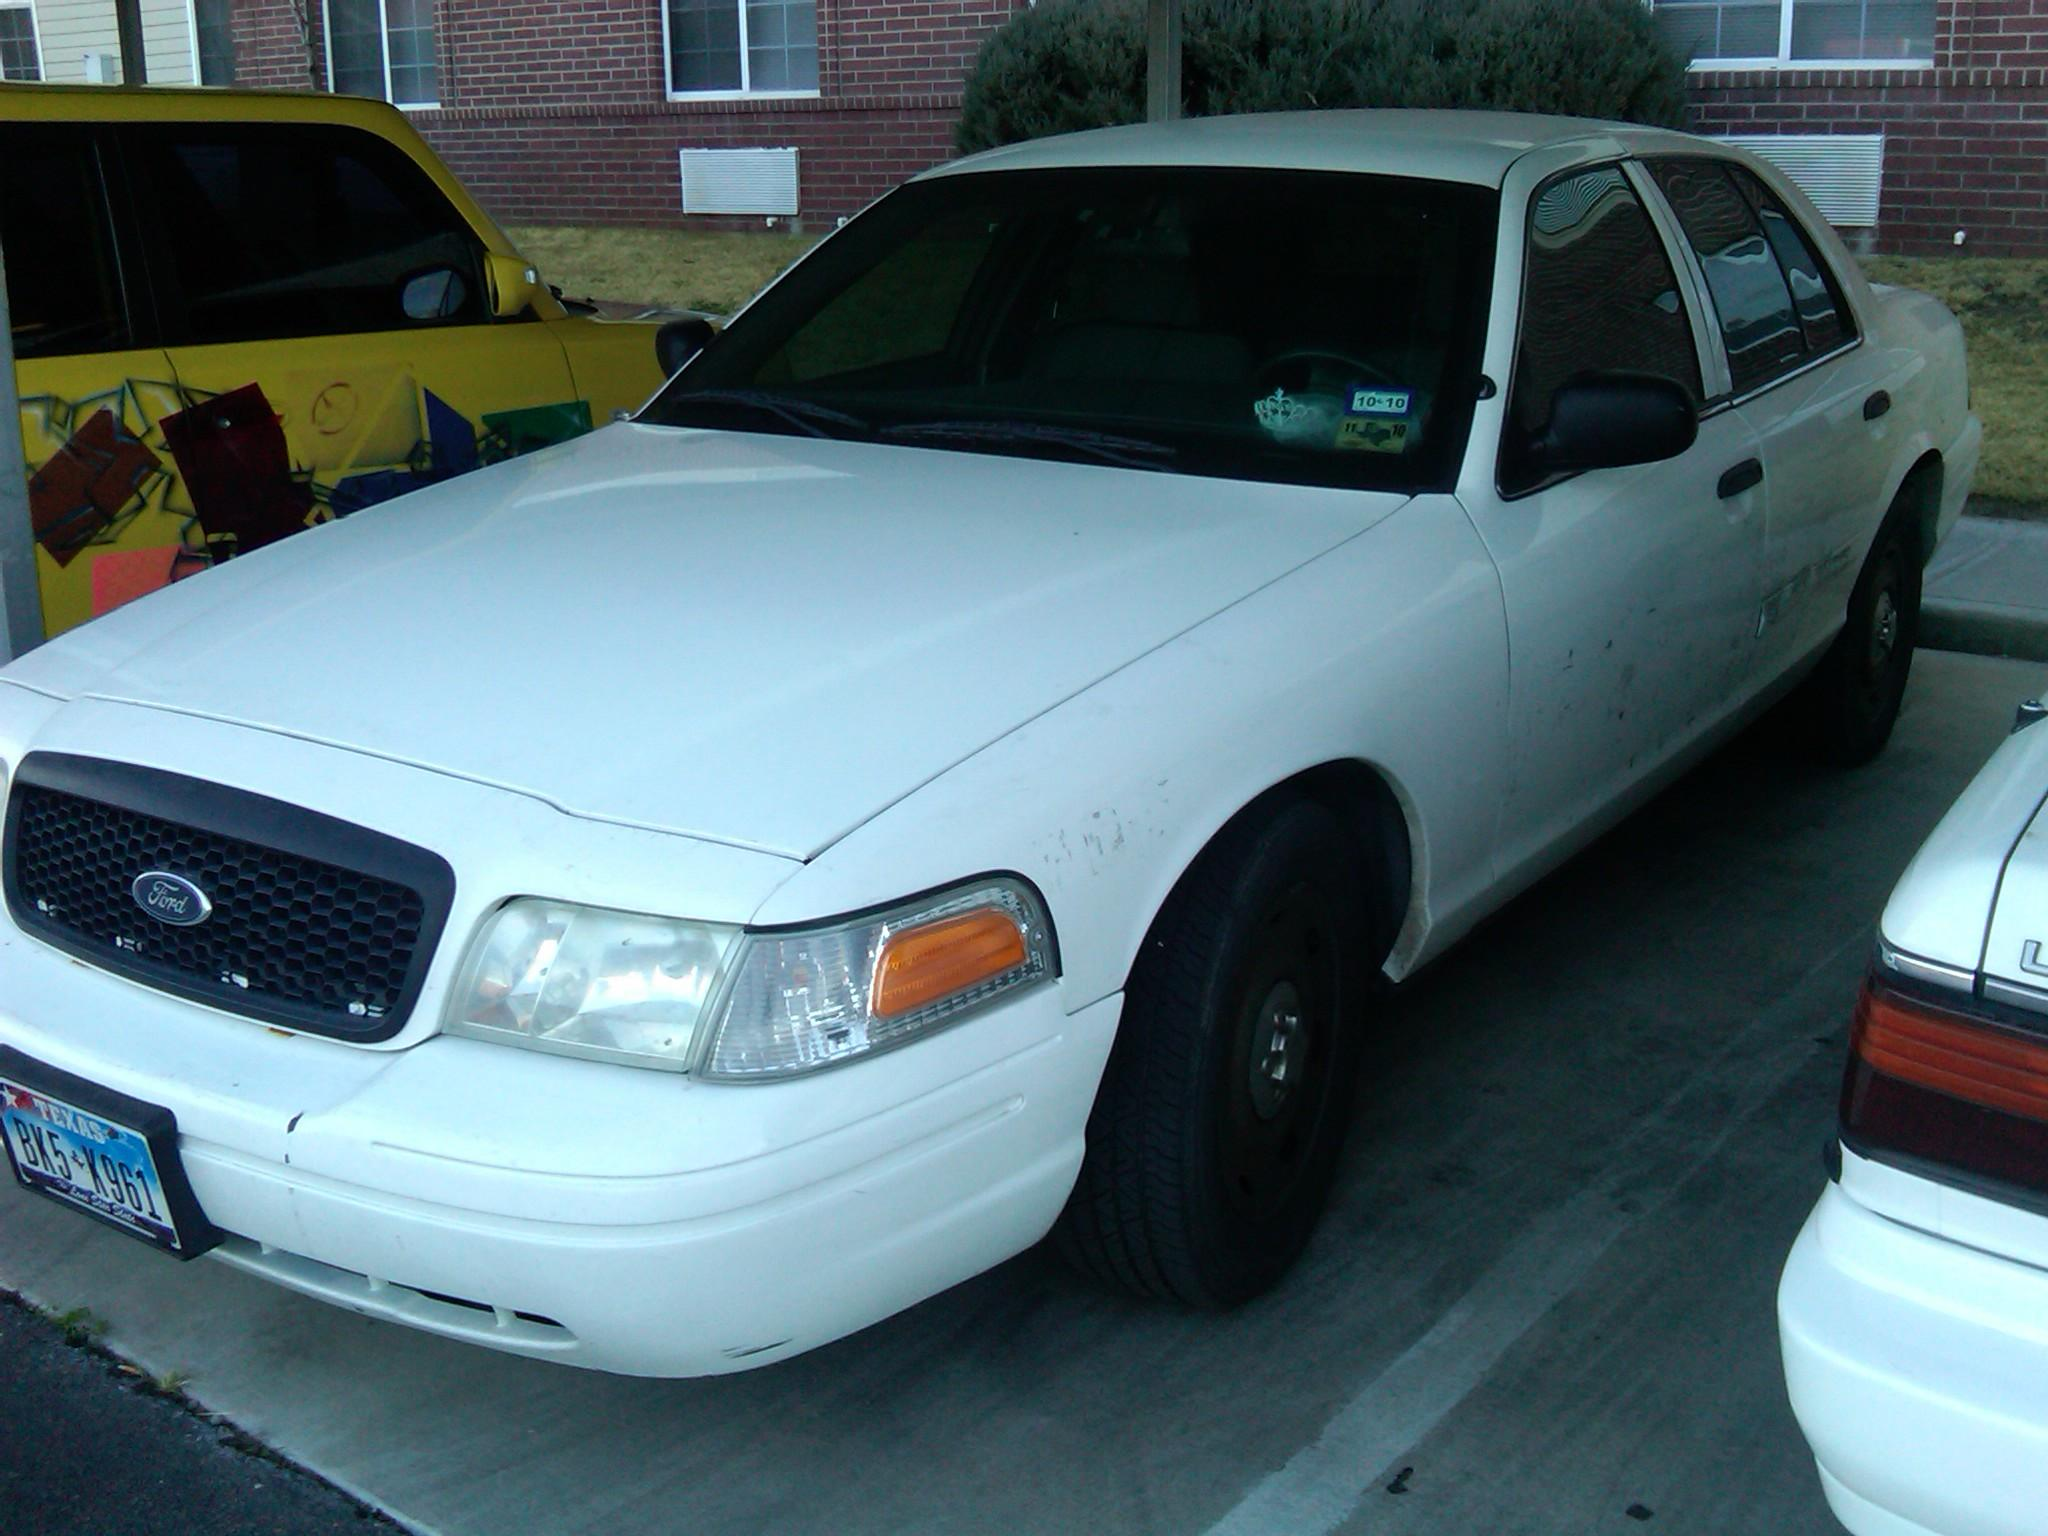 mrdakz's 2003 Ford Crown Victoria